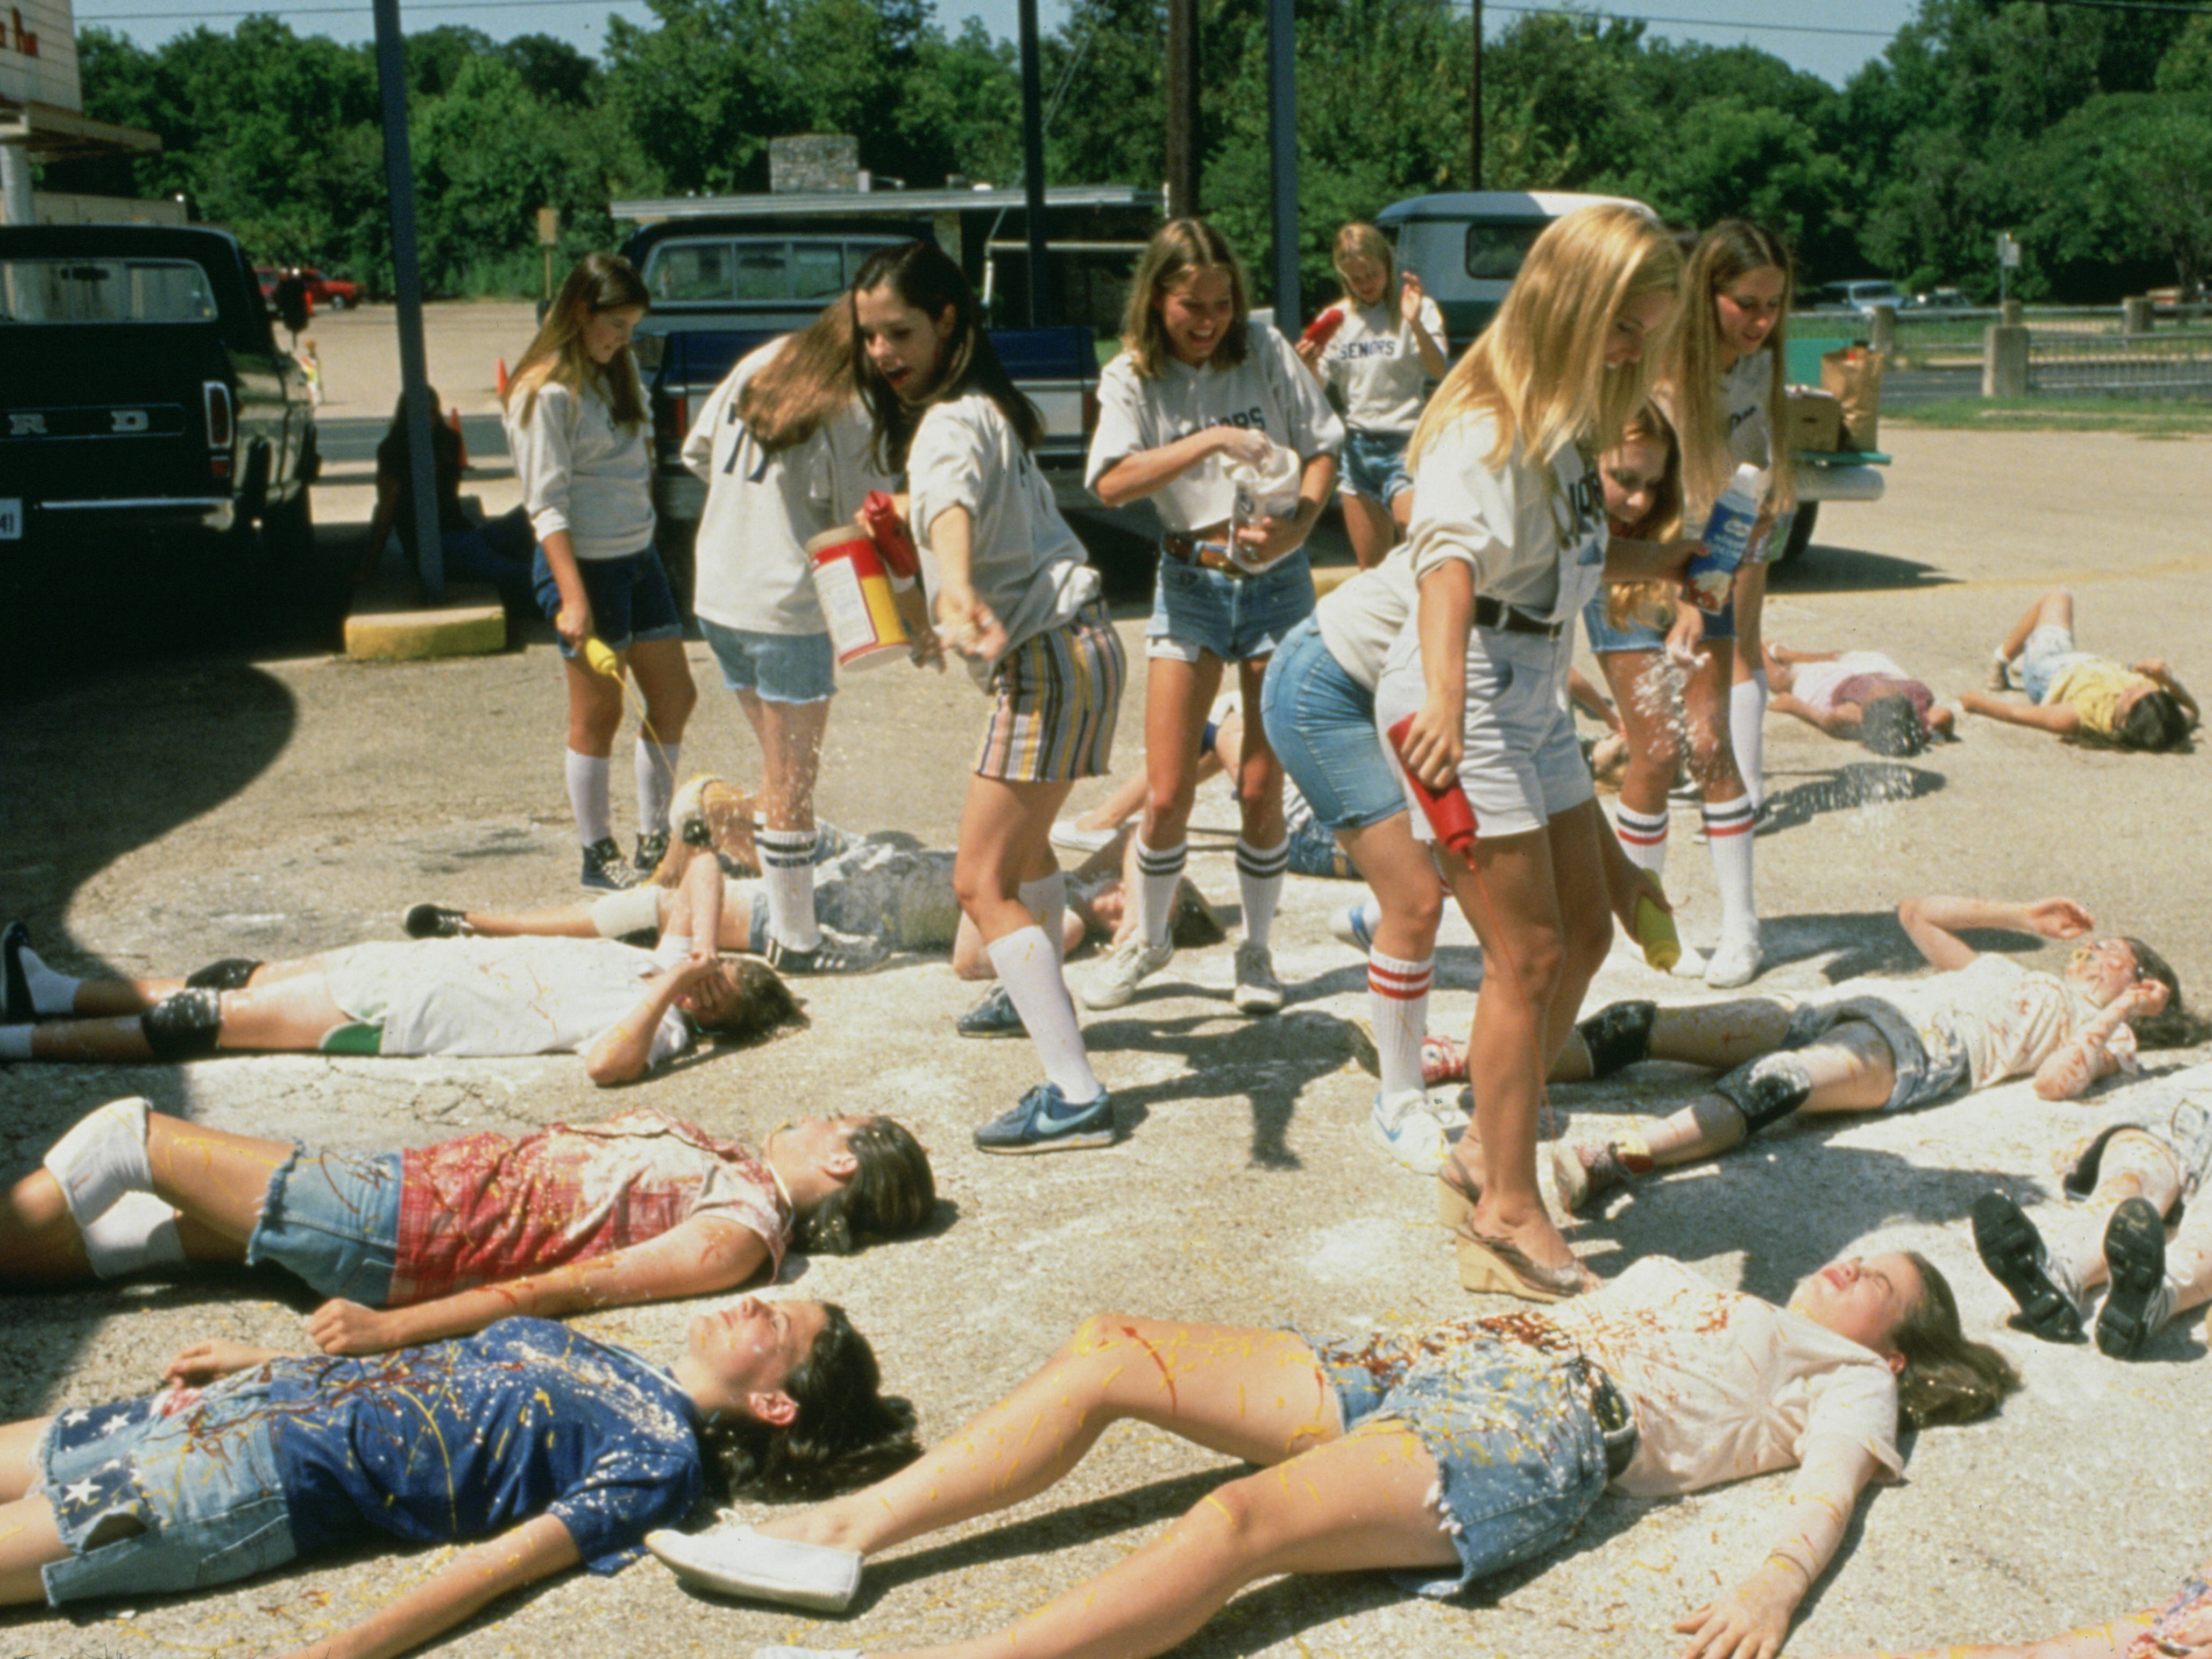 Parker Posey as senior Darla (standing far left in circle) in 'Dazed and Confused.'